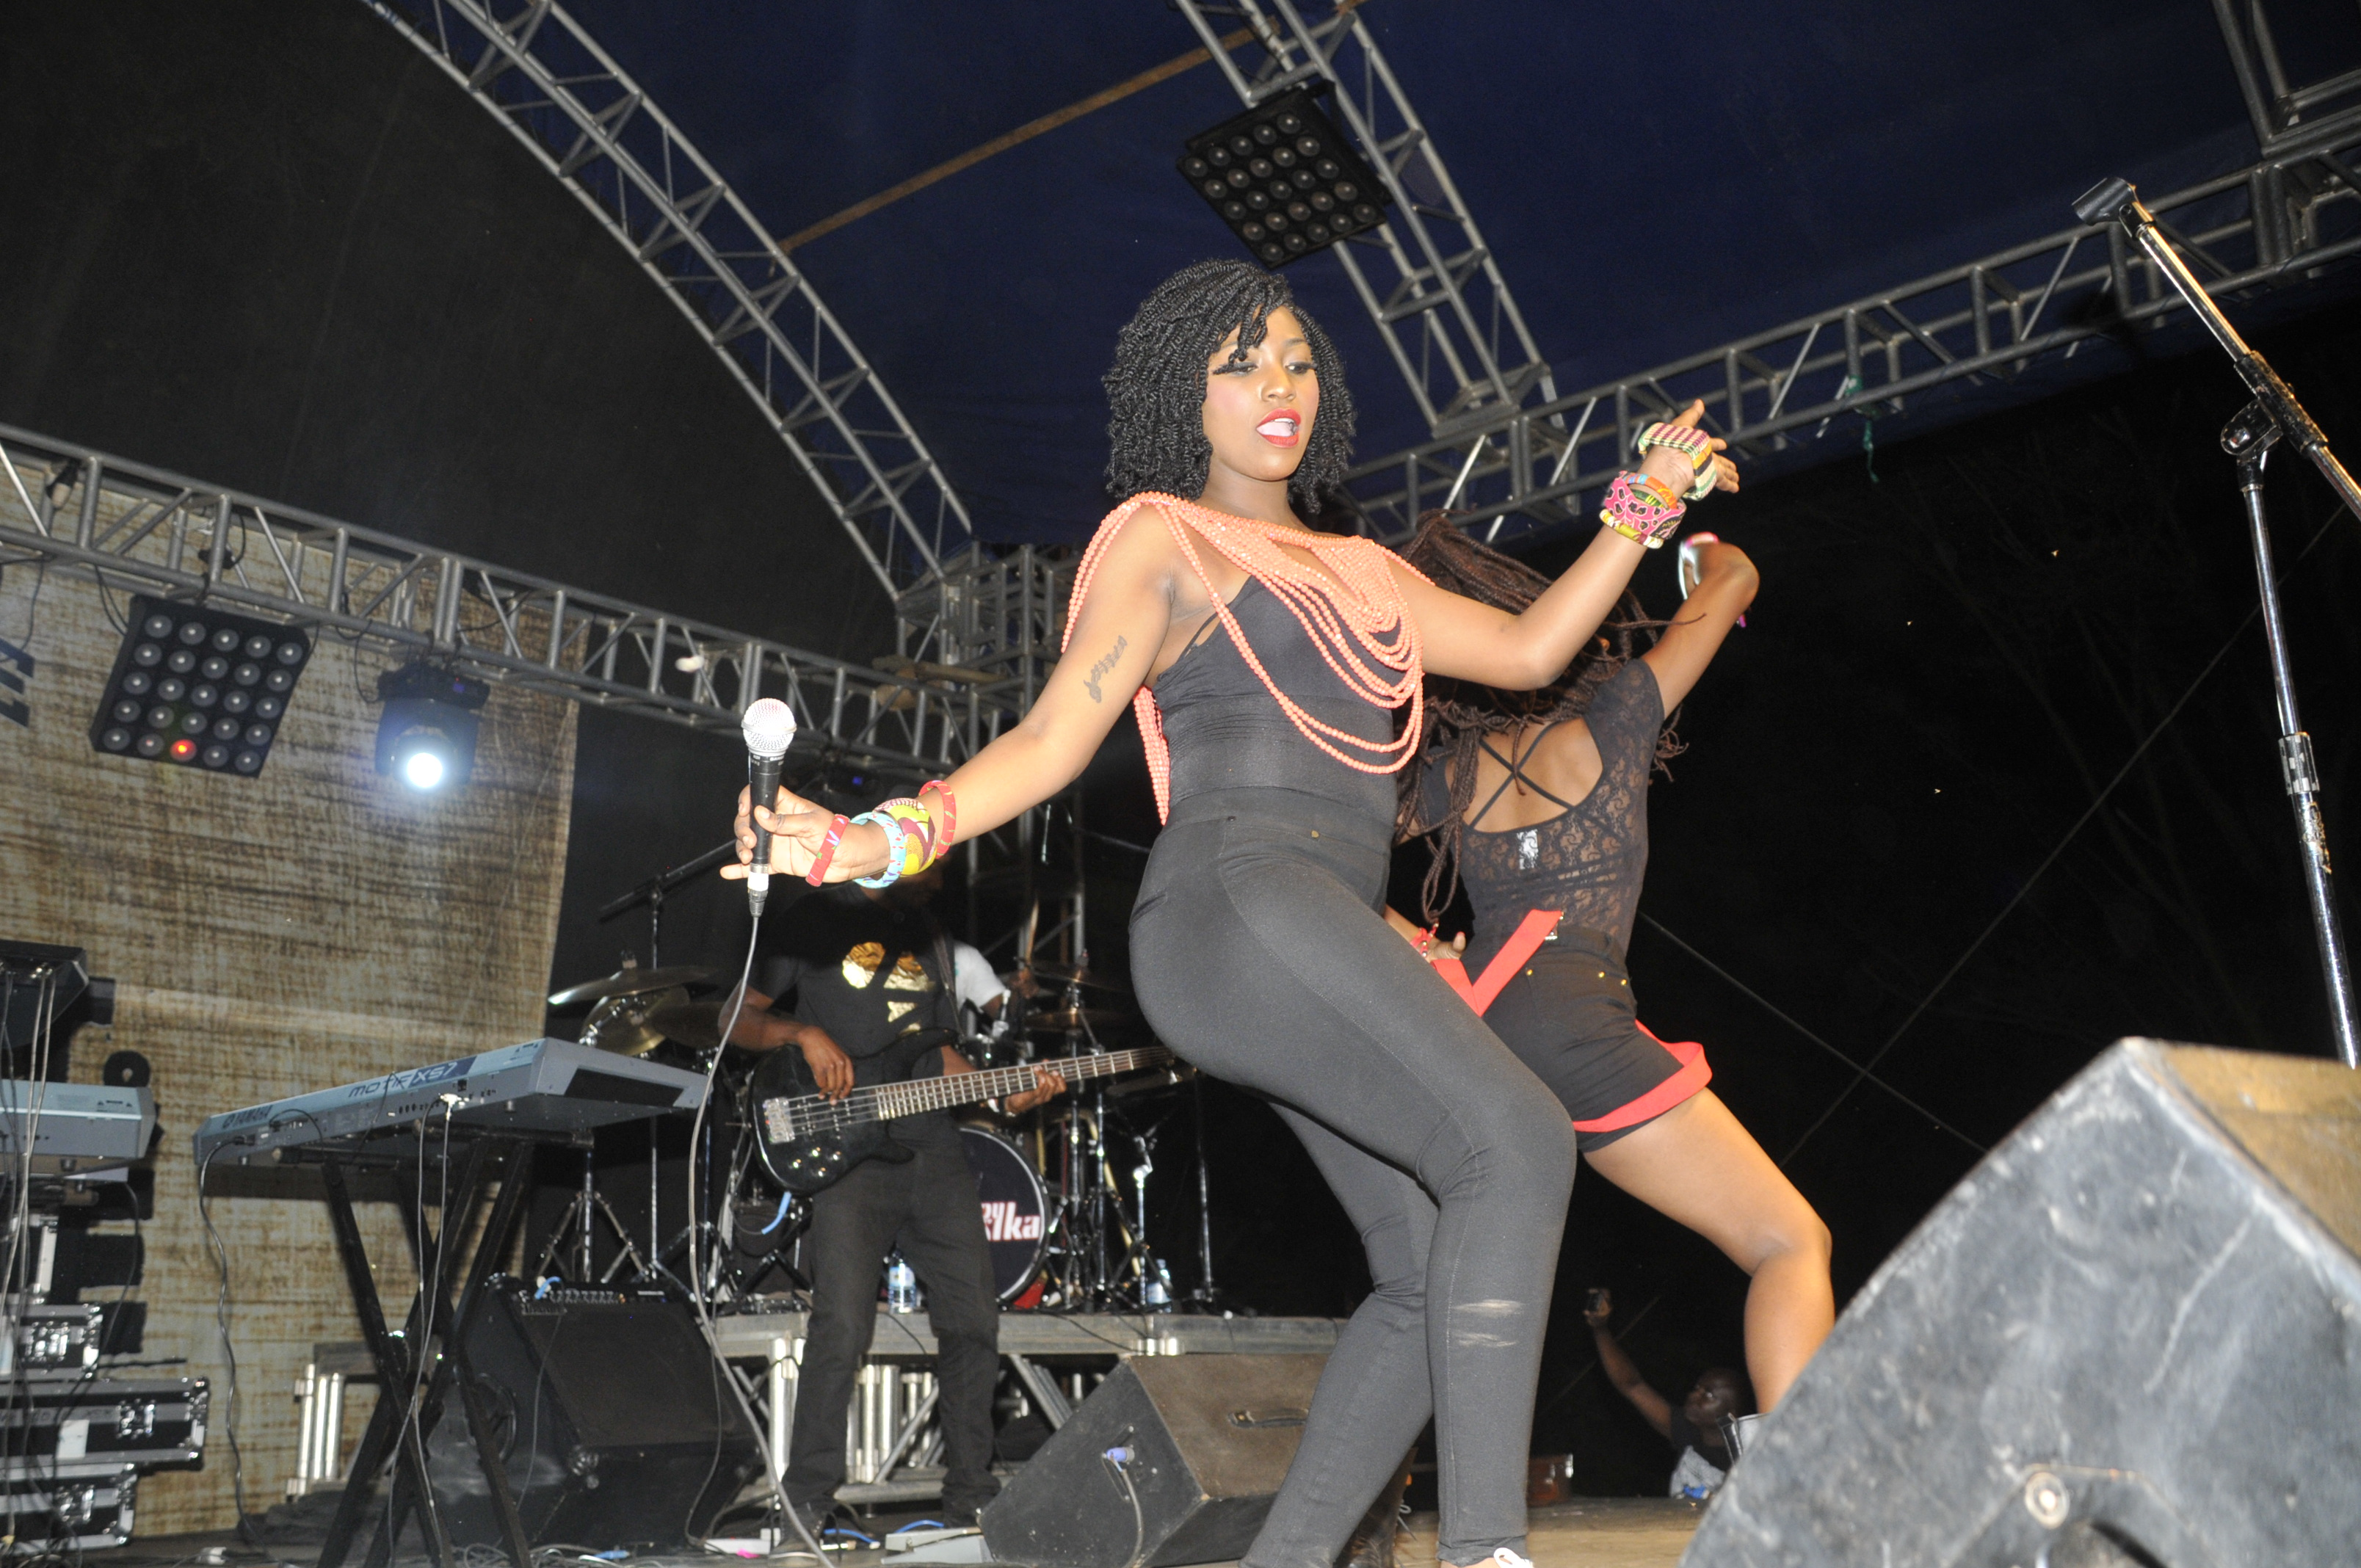 irene-ntale-doing-her-thing-on-stage